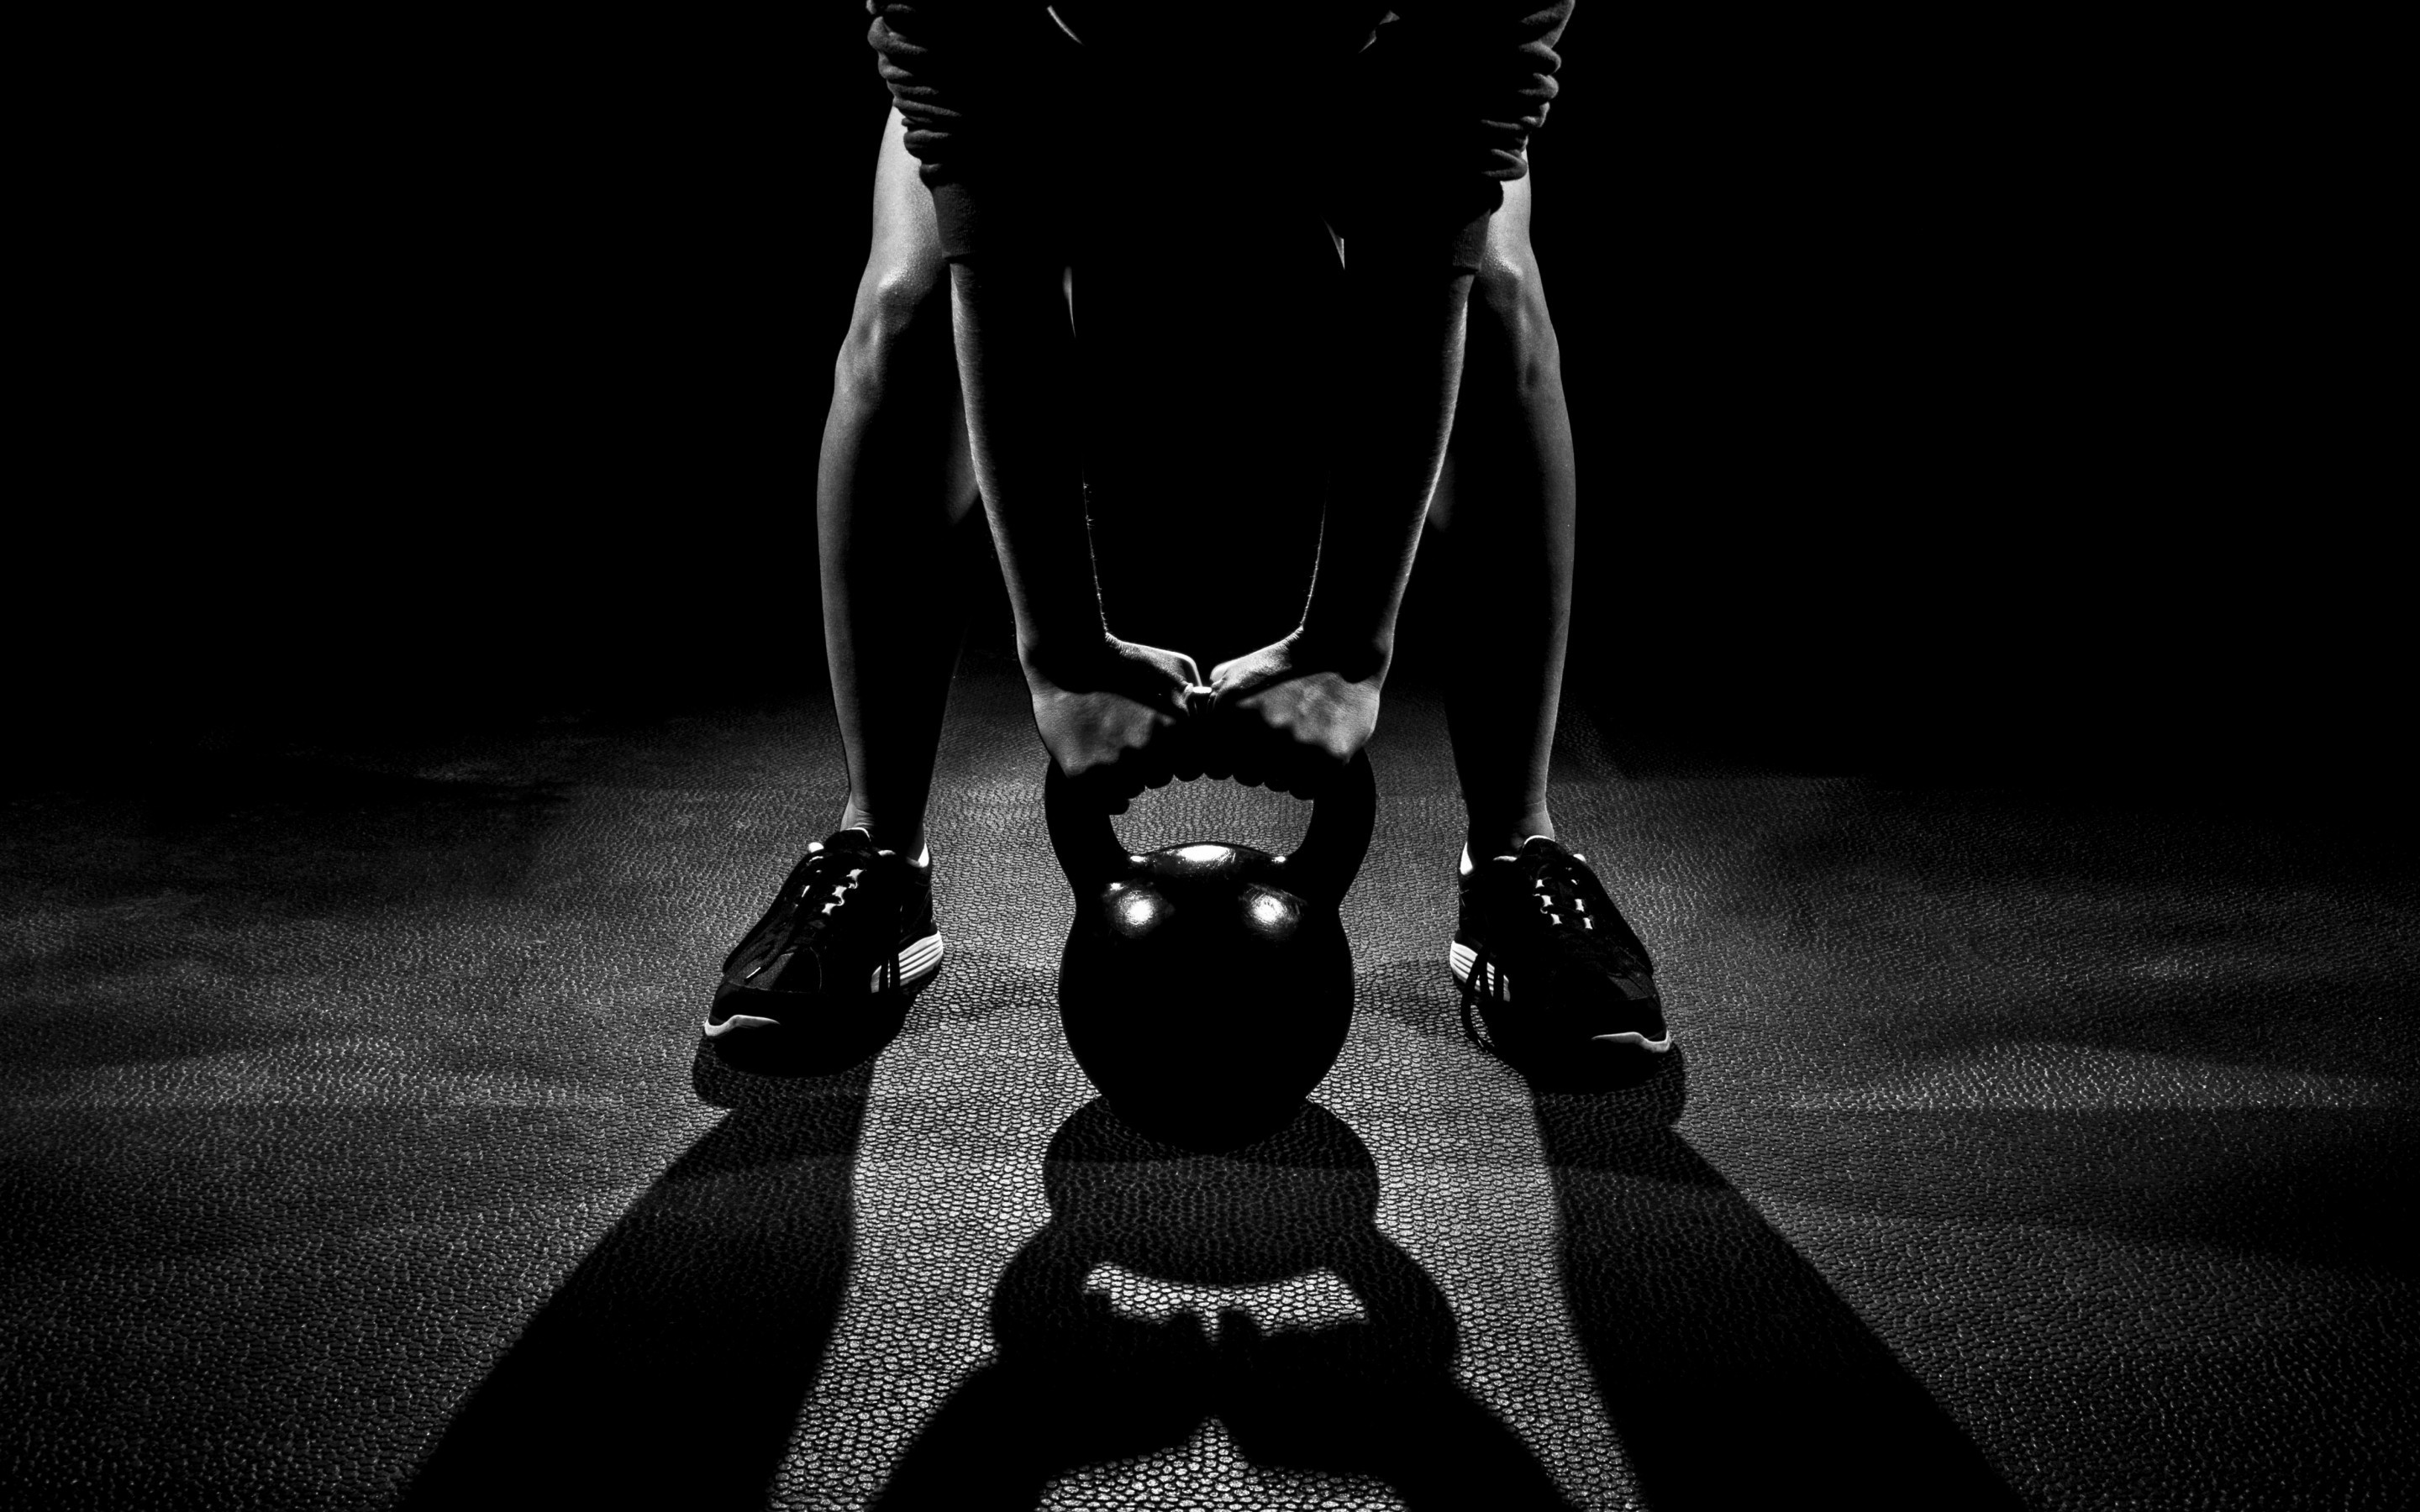 Gym Workout Girl Wallpaper Crossfit Wallpapers 67 Images